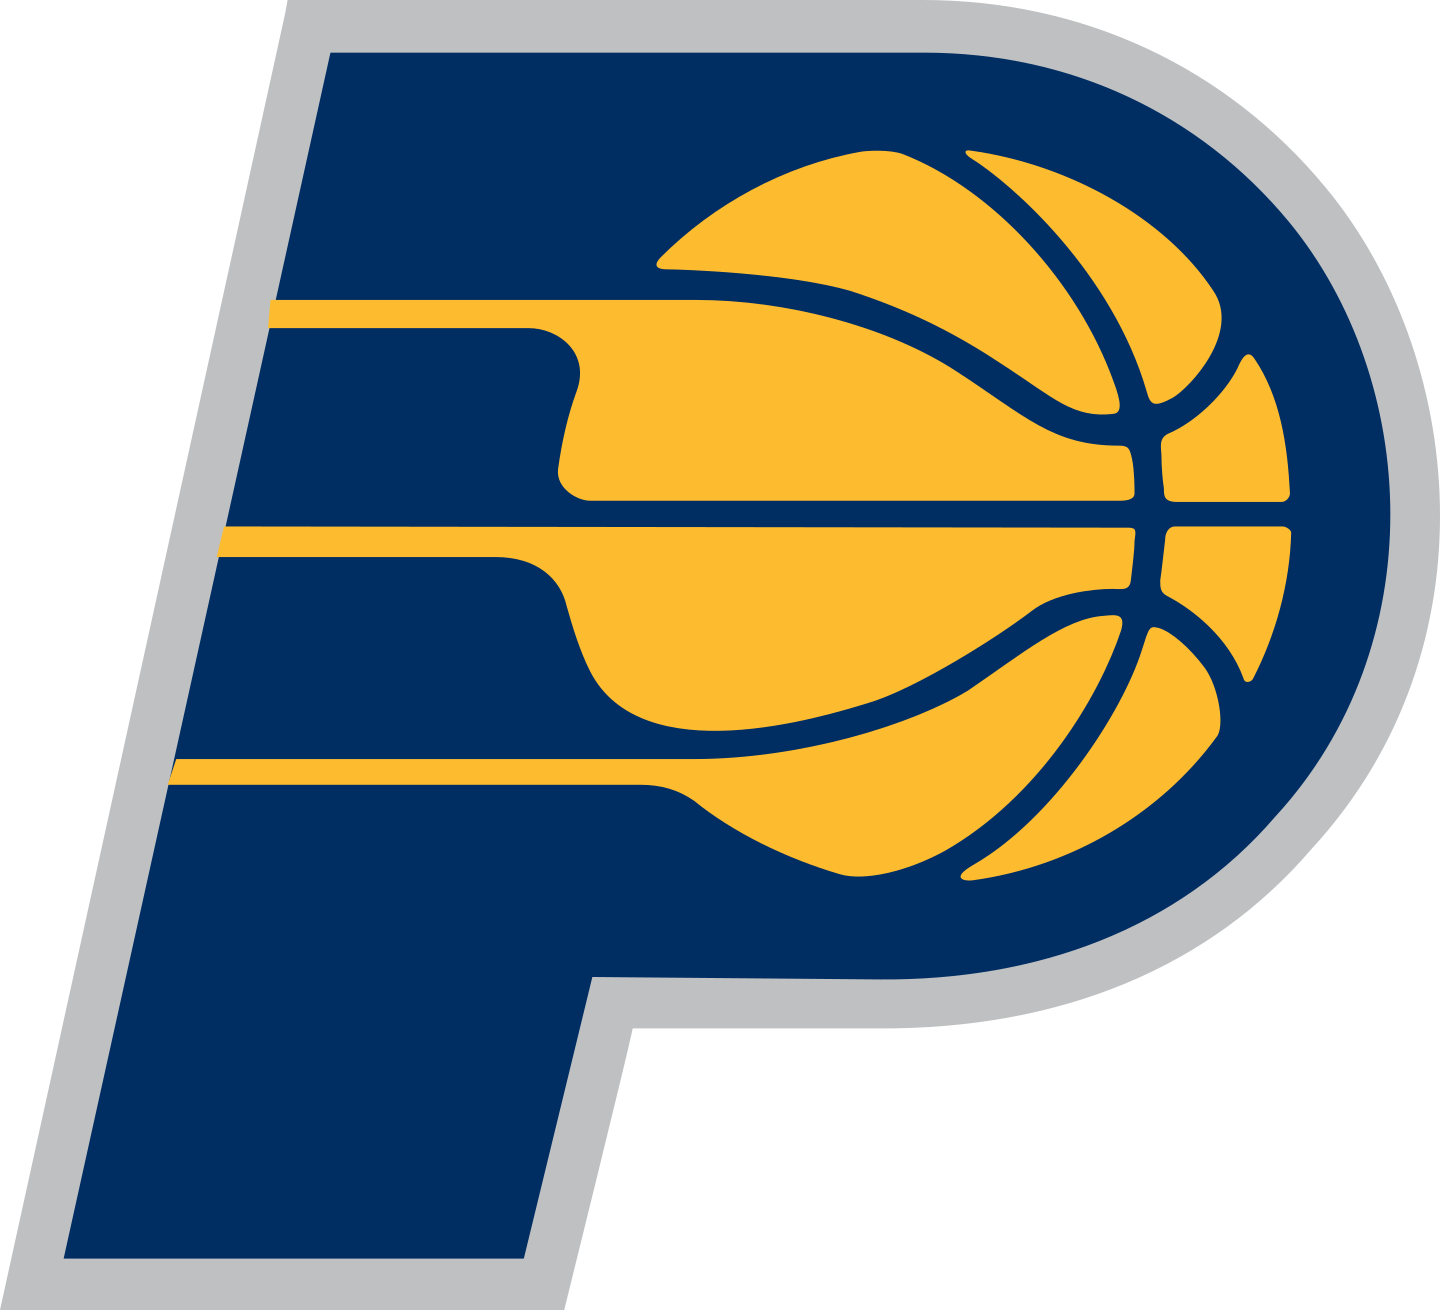 indiana pacers logo 2 - Indiana Pacers Logo